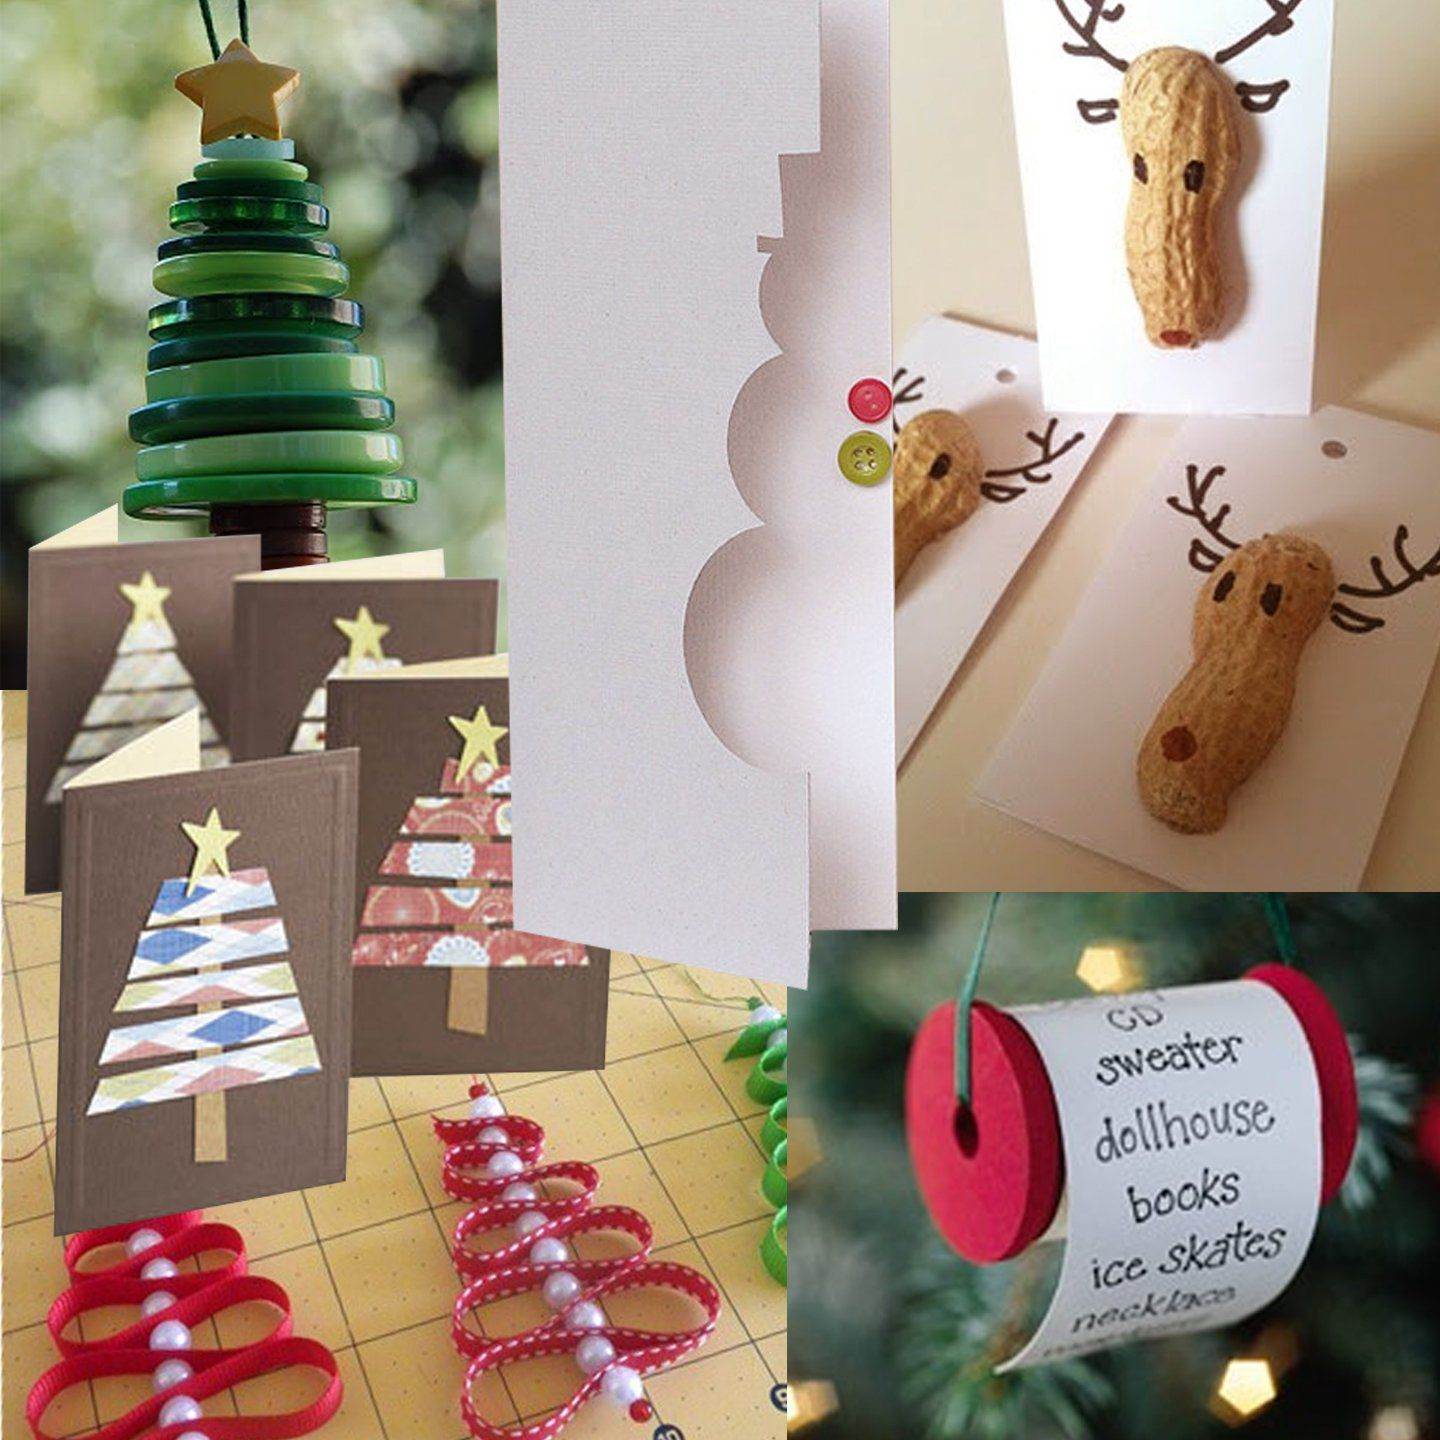 Christmas room ideas diy decorations xmas decorations for Christmas tree decorations you can make at home